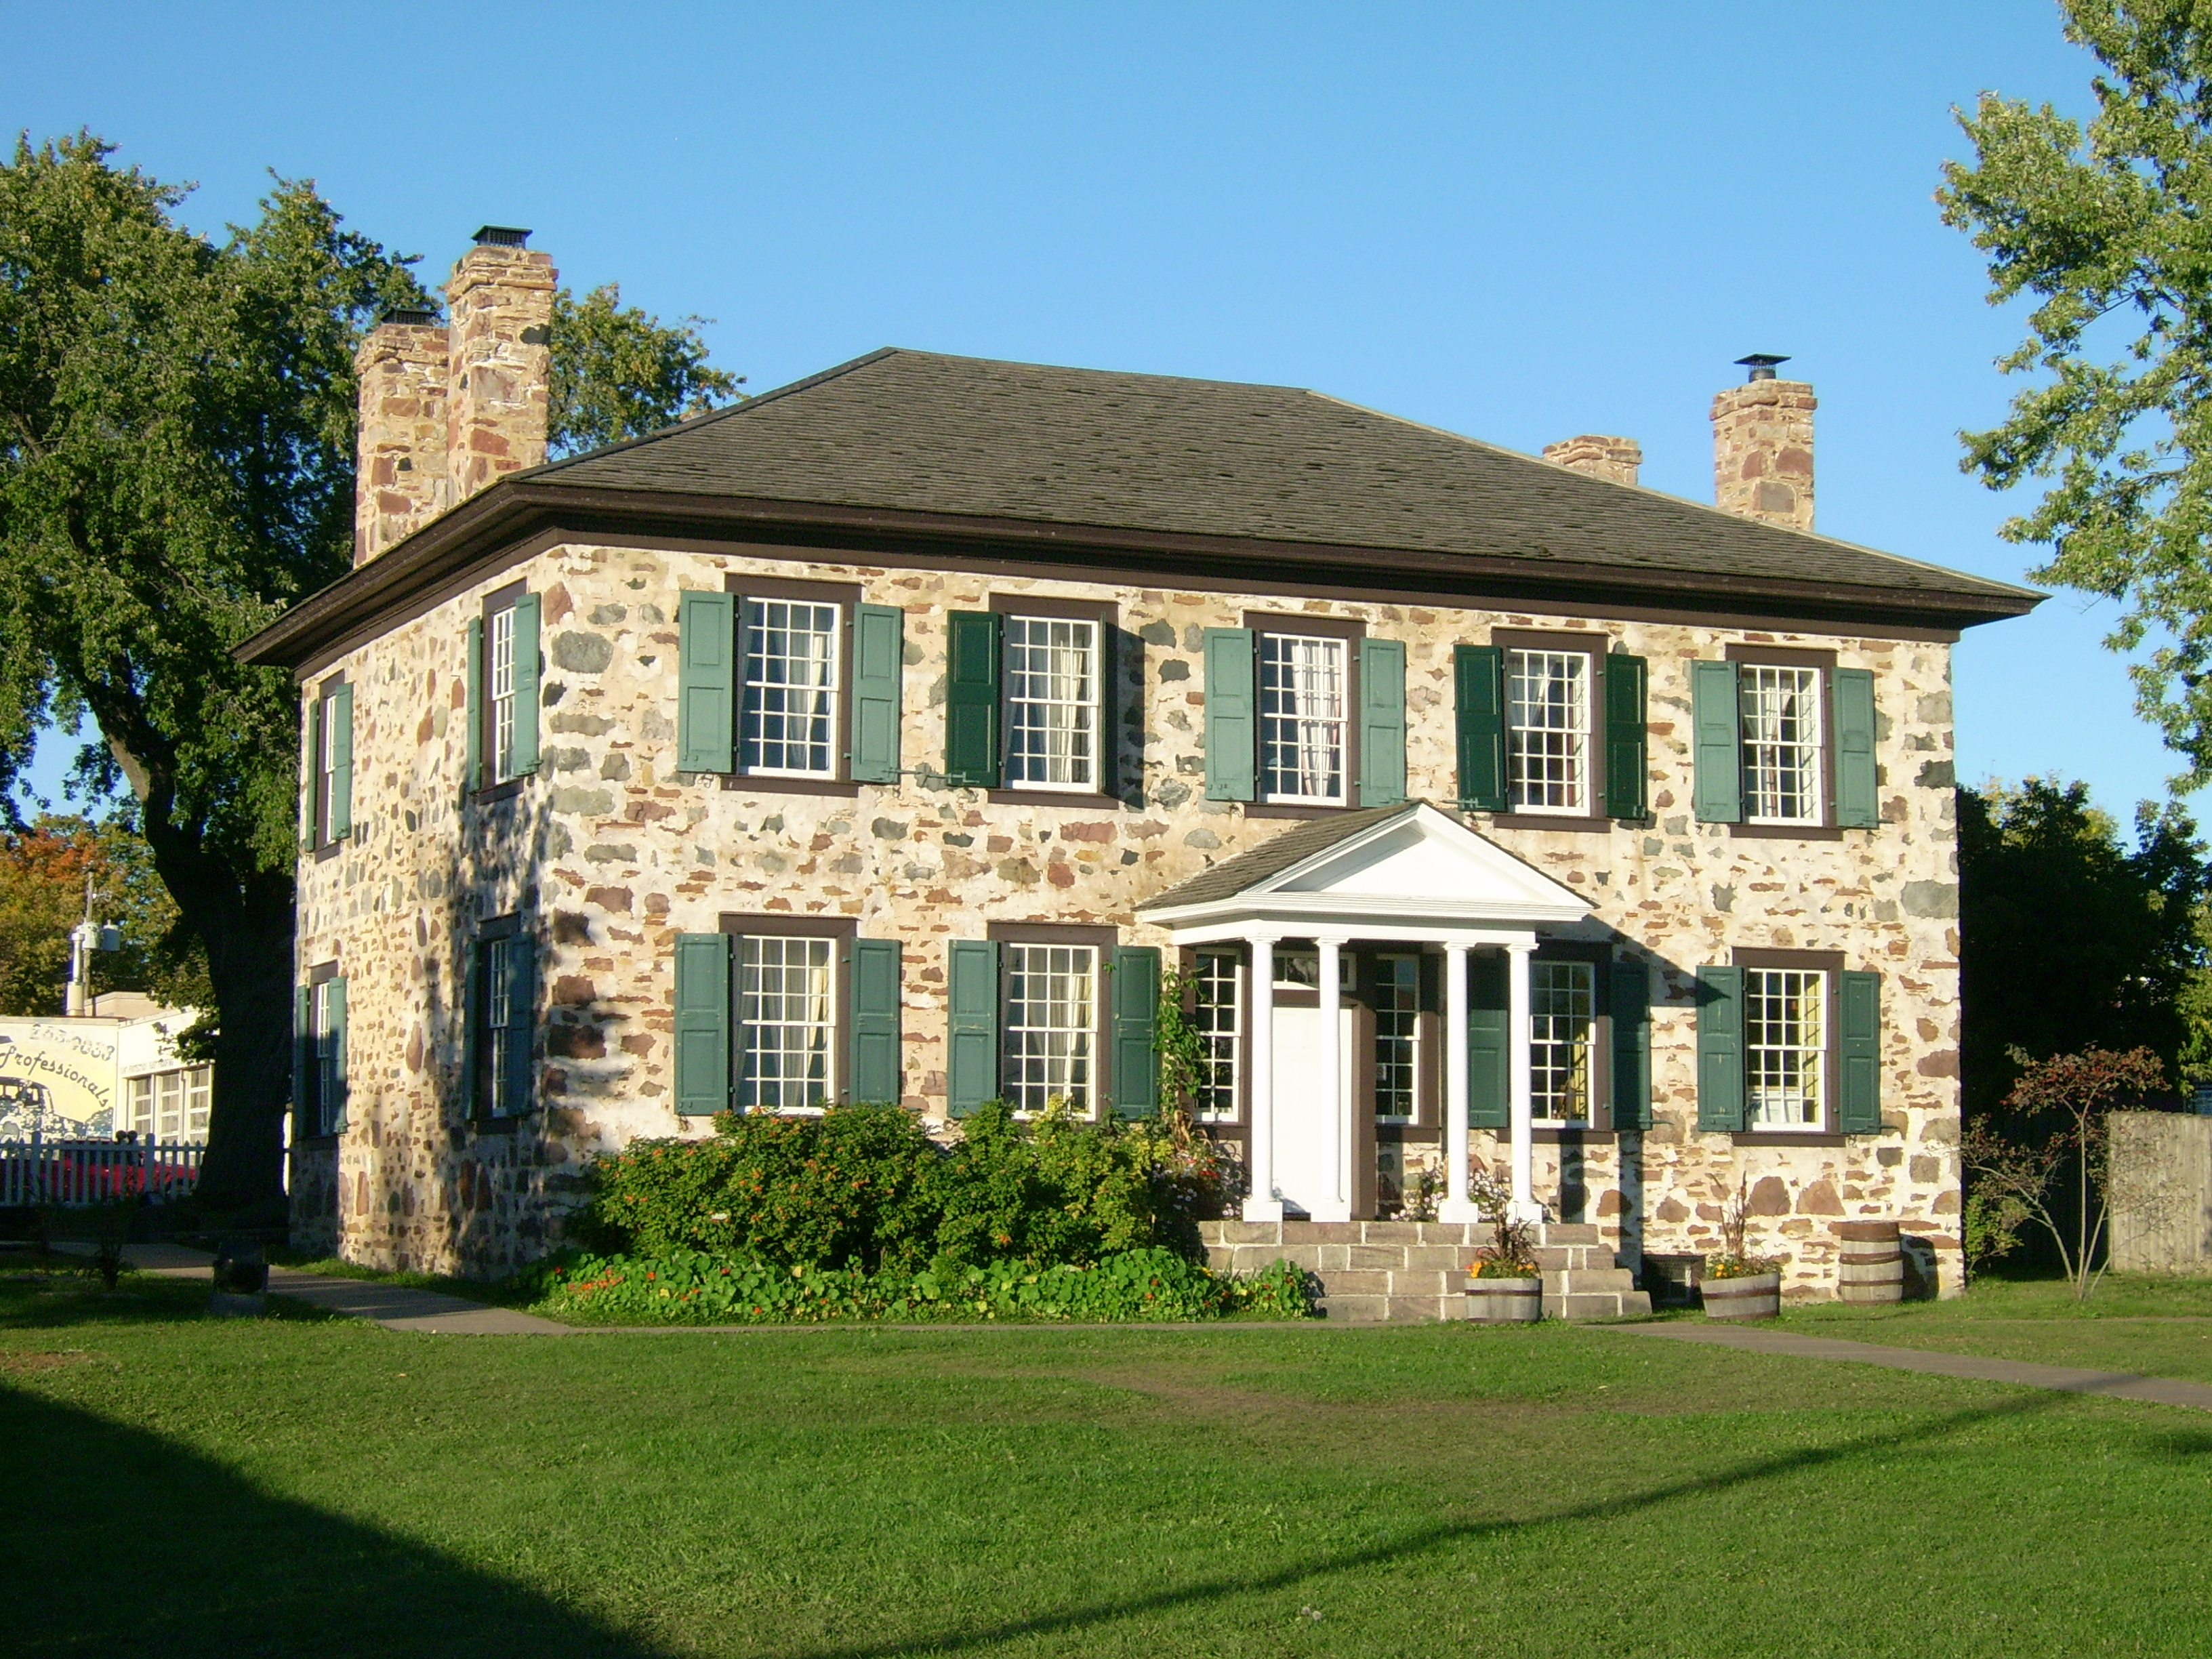 File ermatinger old stone house 3 jpg wikimedia commons for This old housse